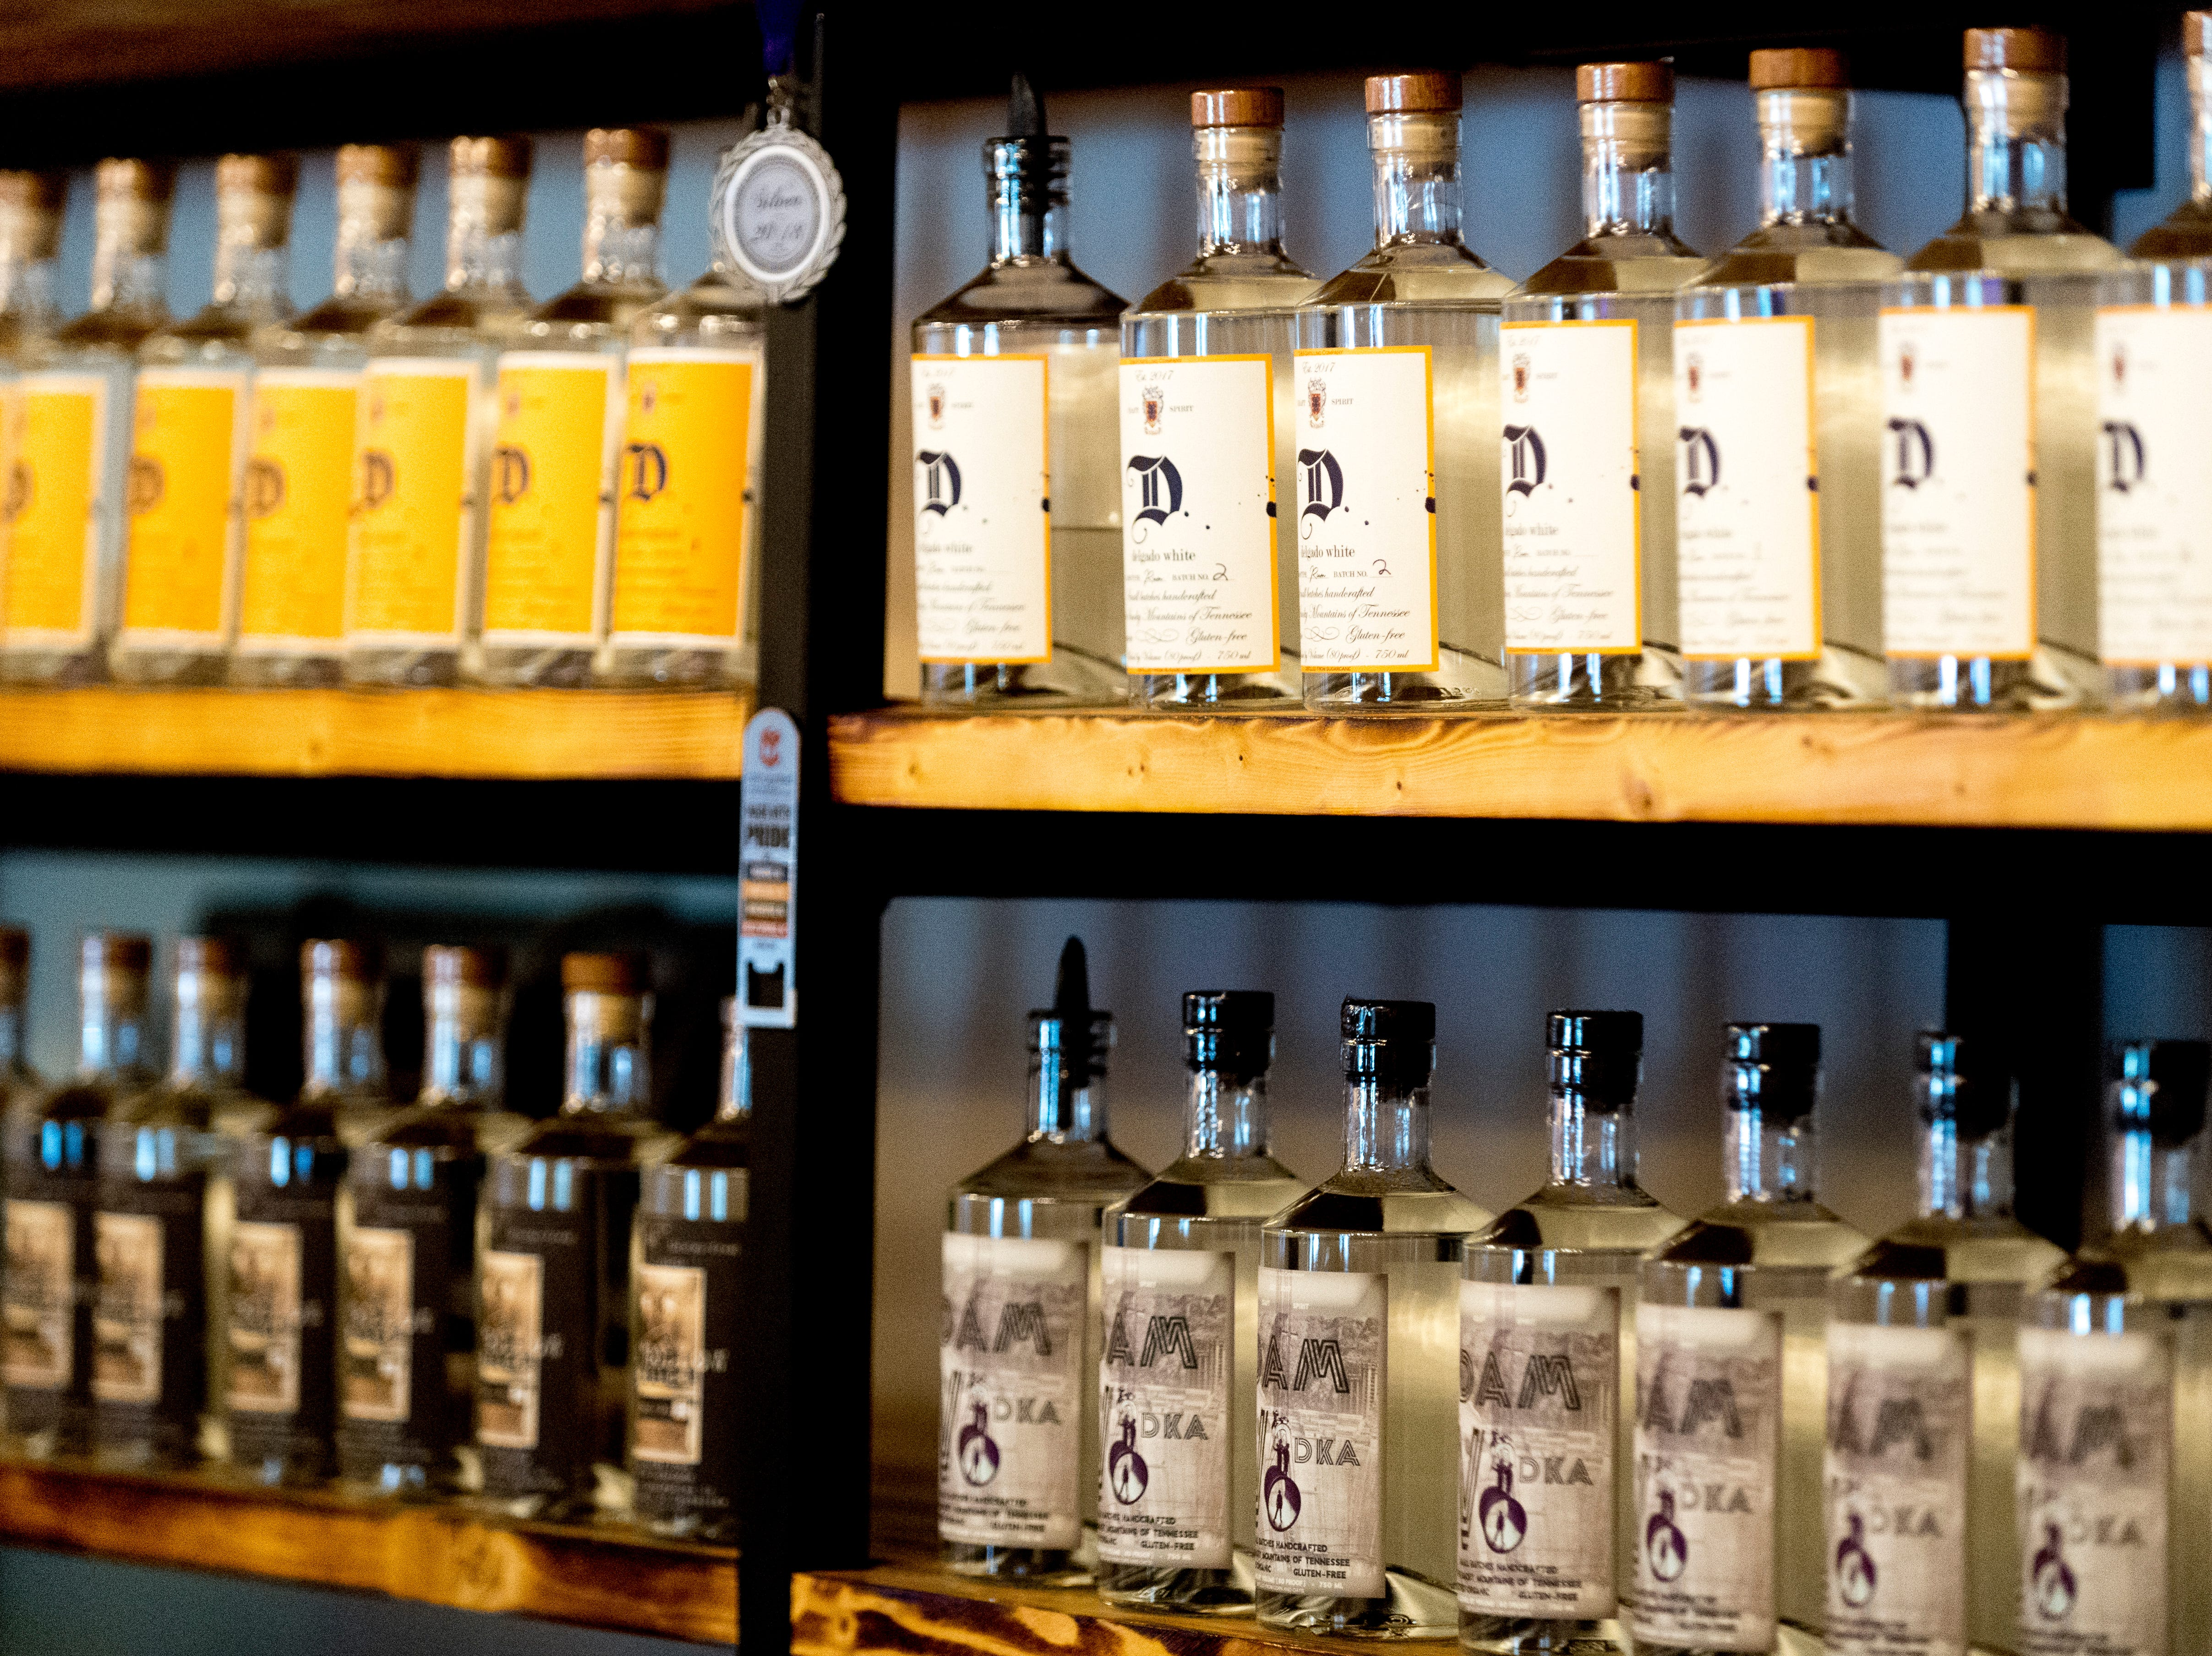 Bottles of vodka, moonshine and rums at the bar inside D&S Distilling on 1610 Jenkins Rd. in Sevierville, Tennessee on Tuesday, October 9, 2018. D&S Distilling is TennesseeÕs first completely organic and gluten-free distillery.